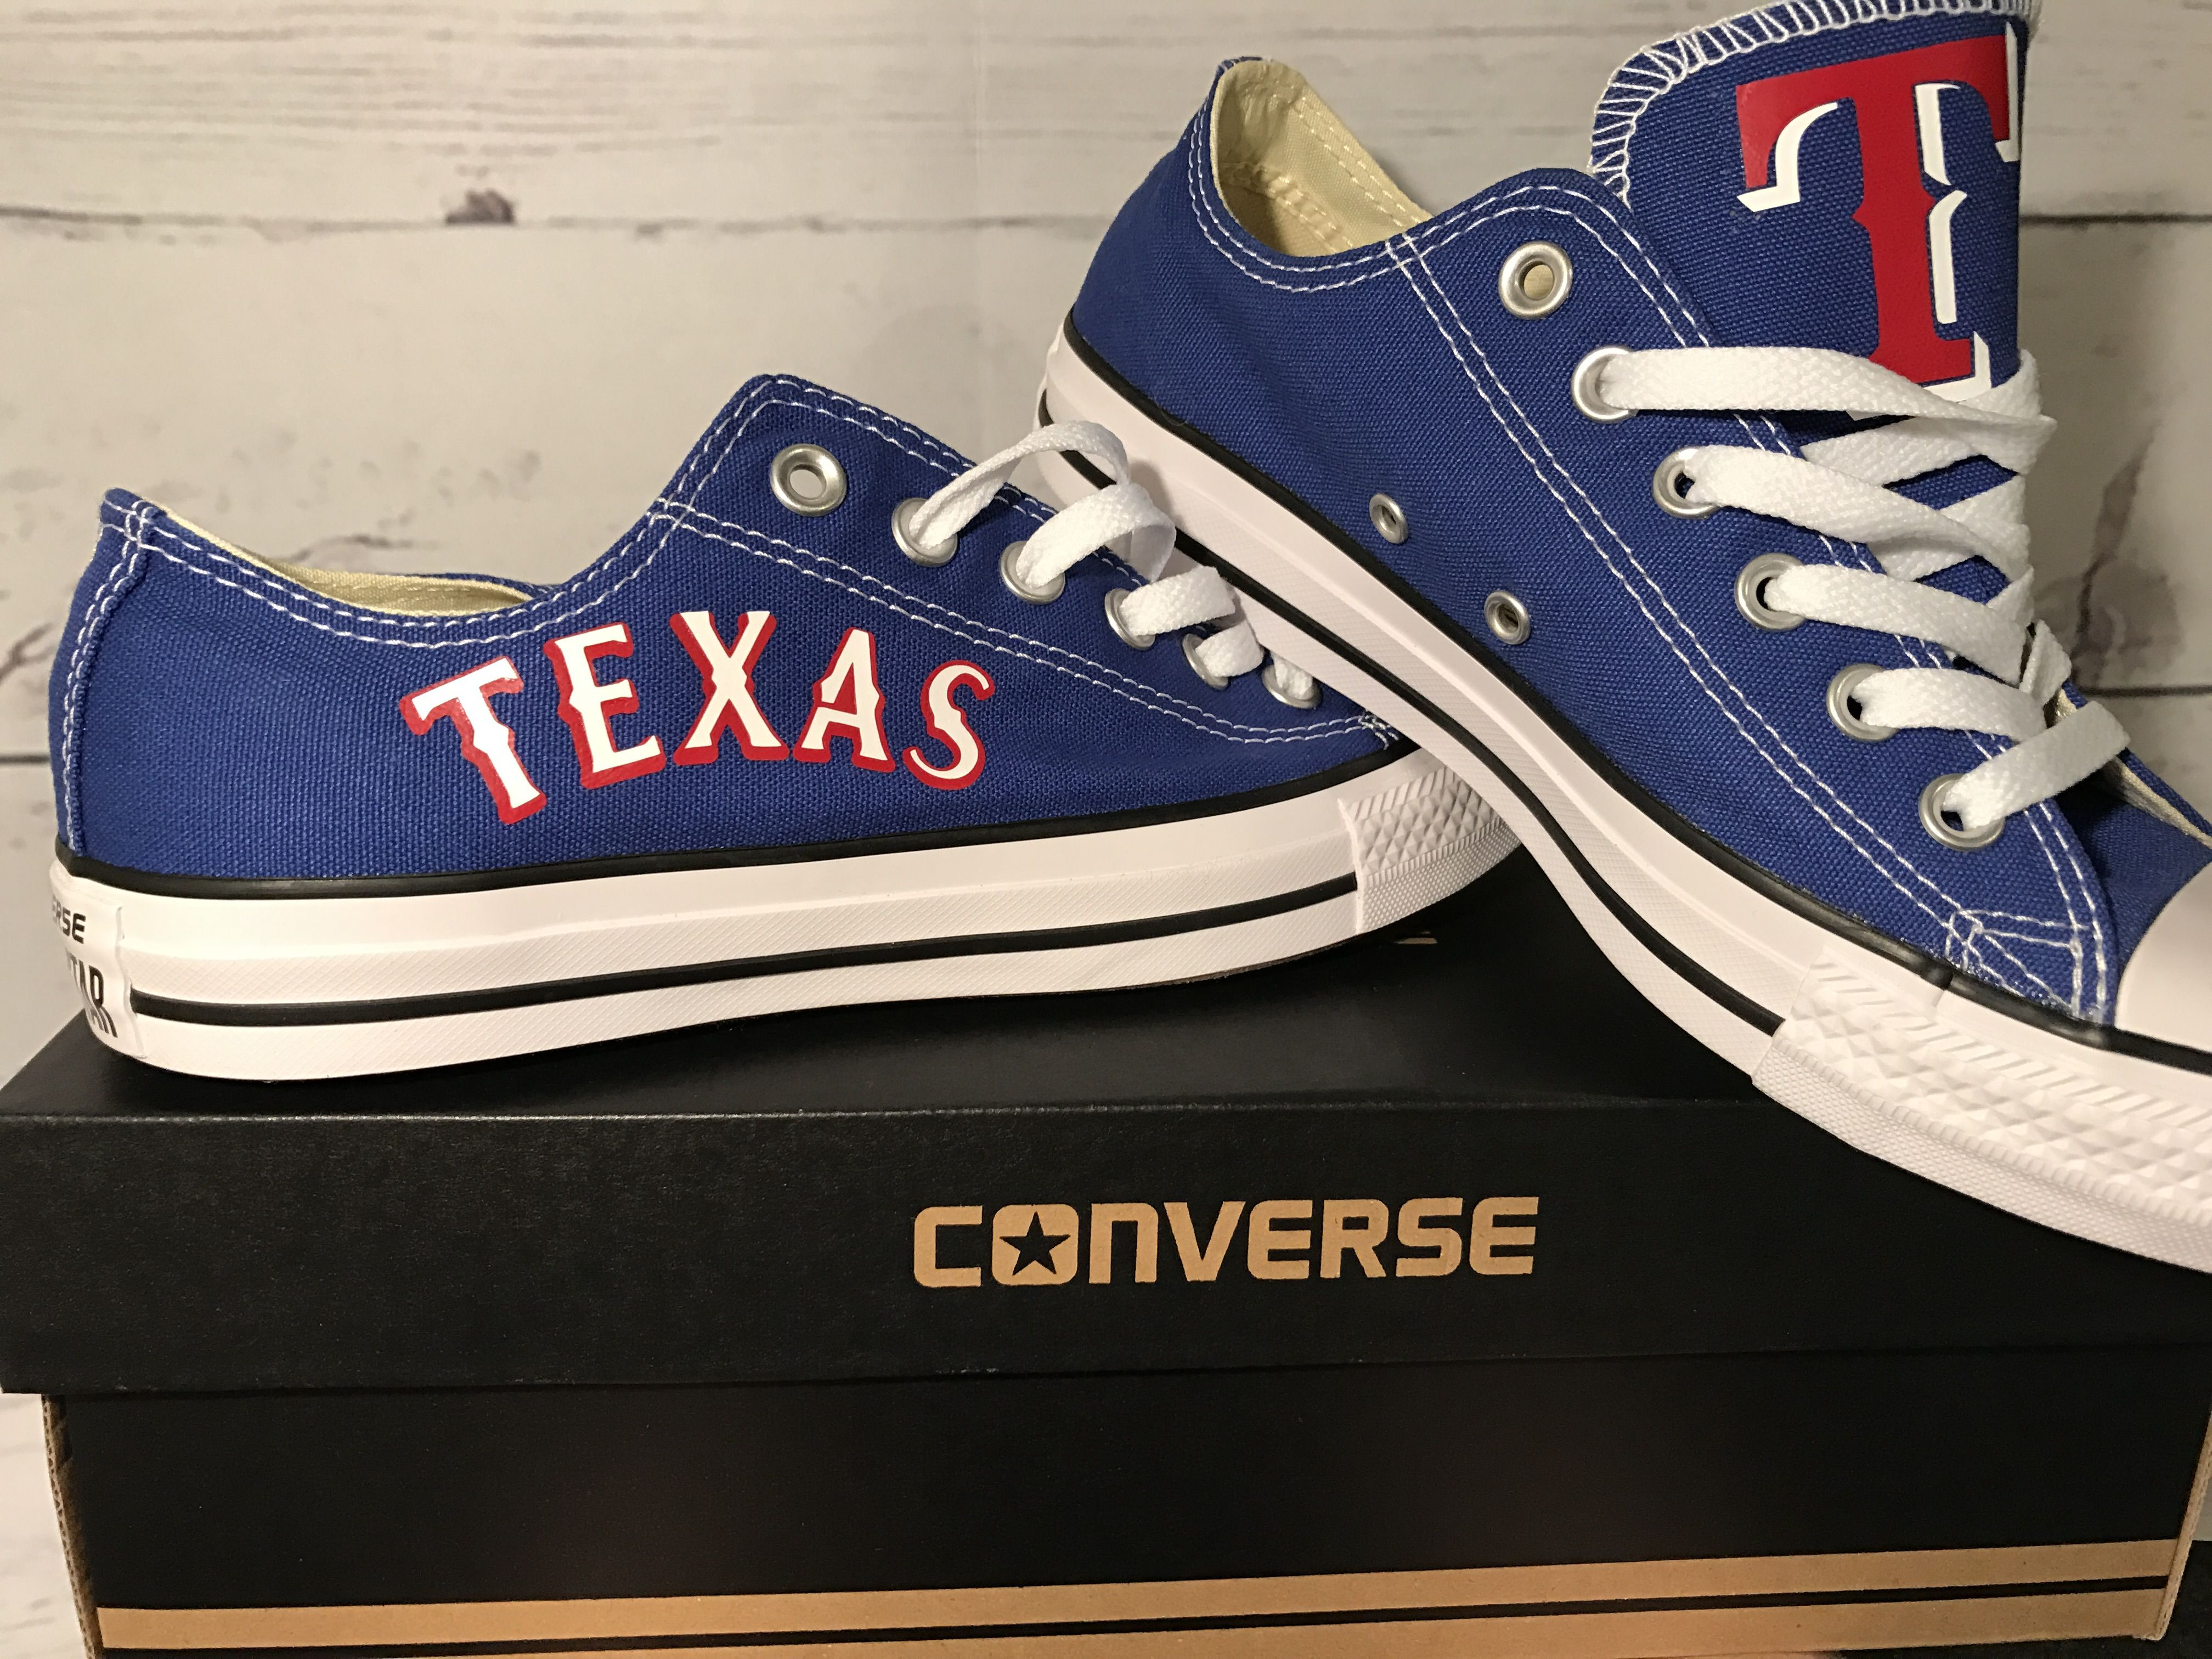 MadeShoes On Layered Converse Htv ShoesThings I've LRq54j3A